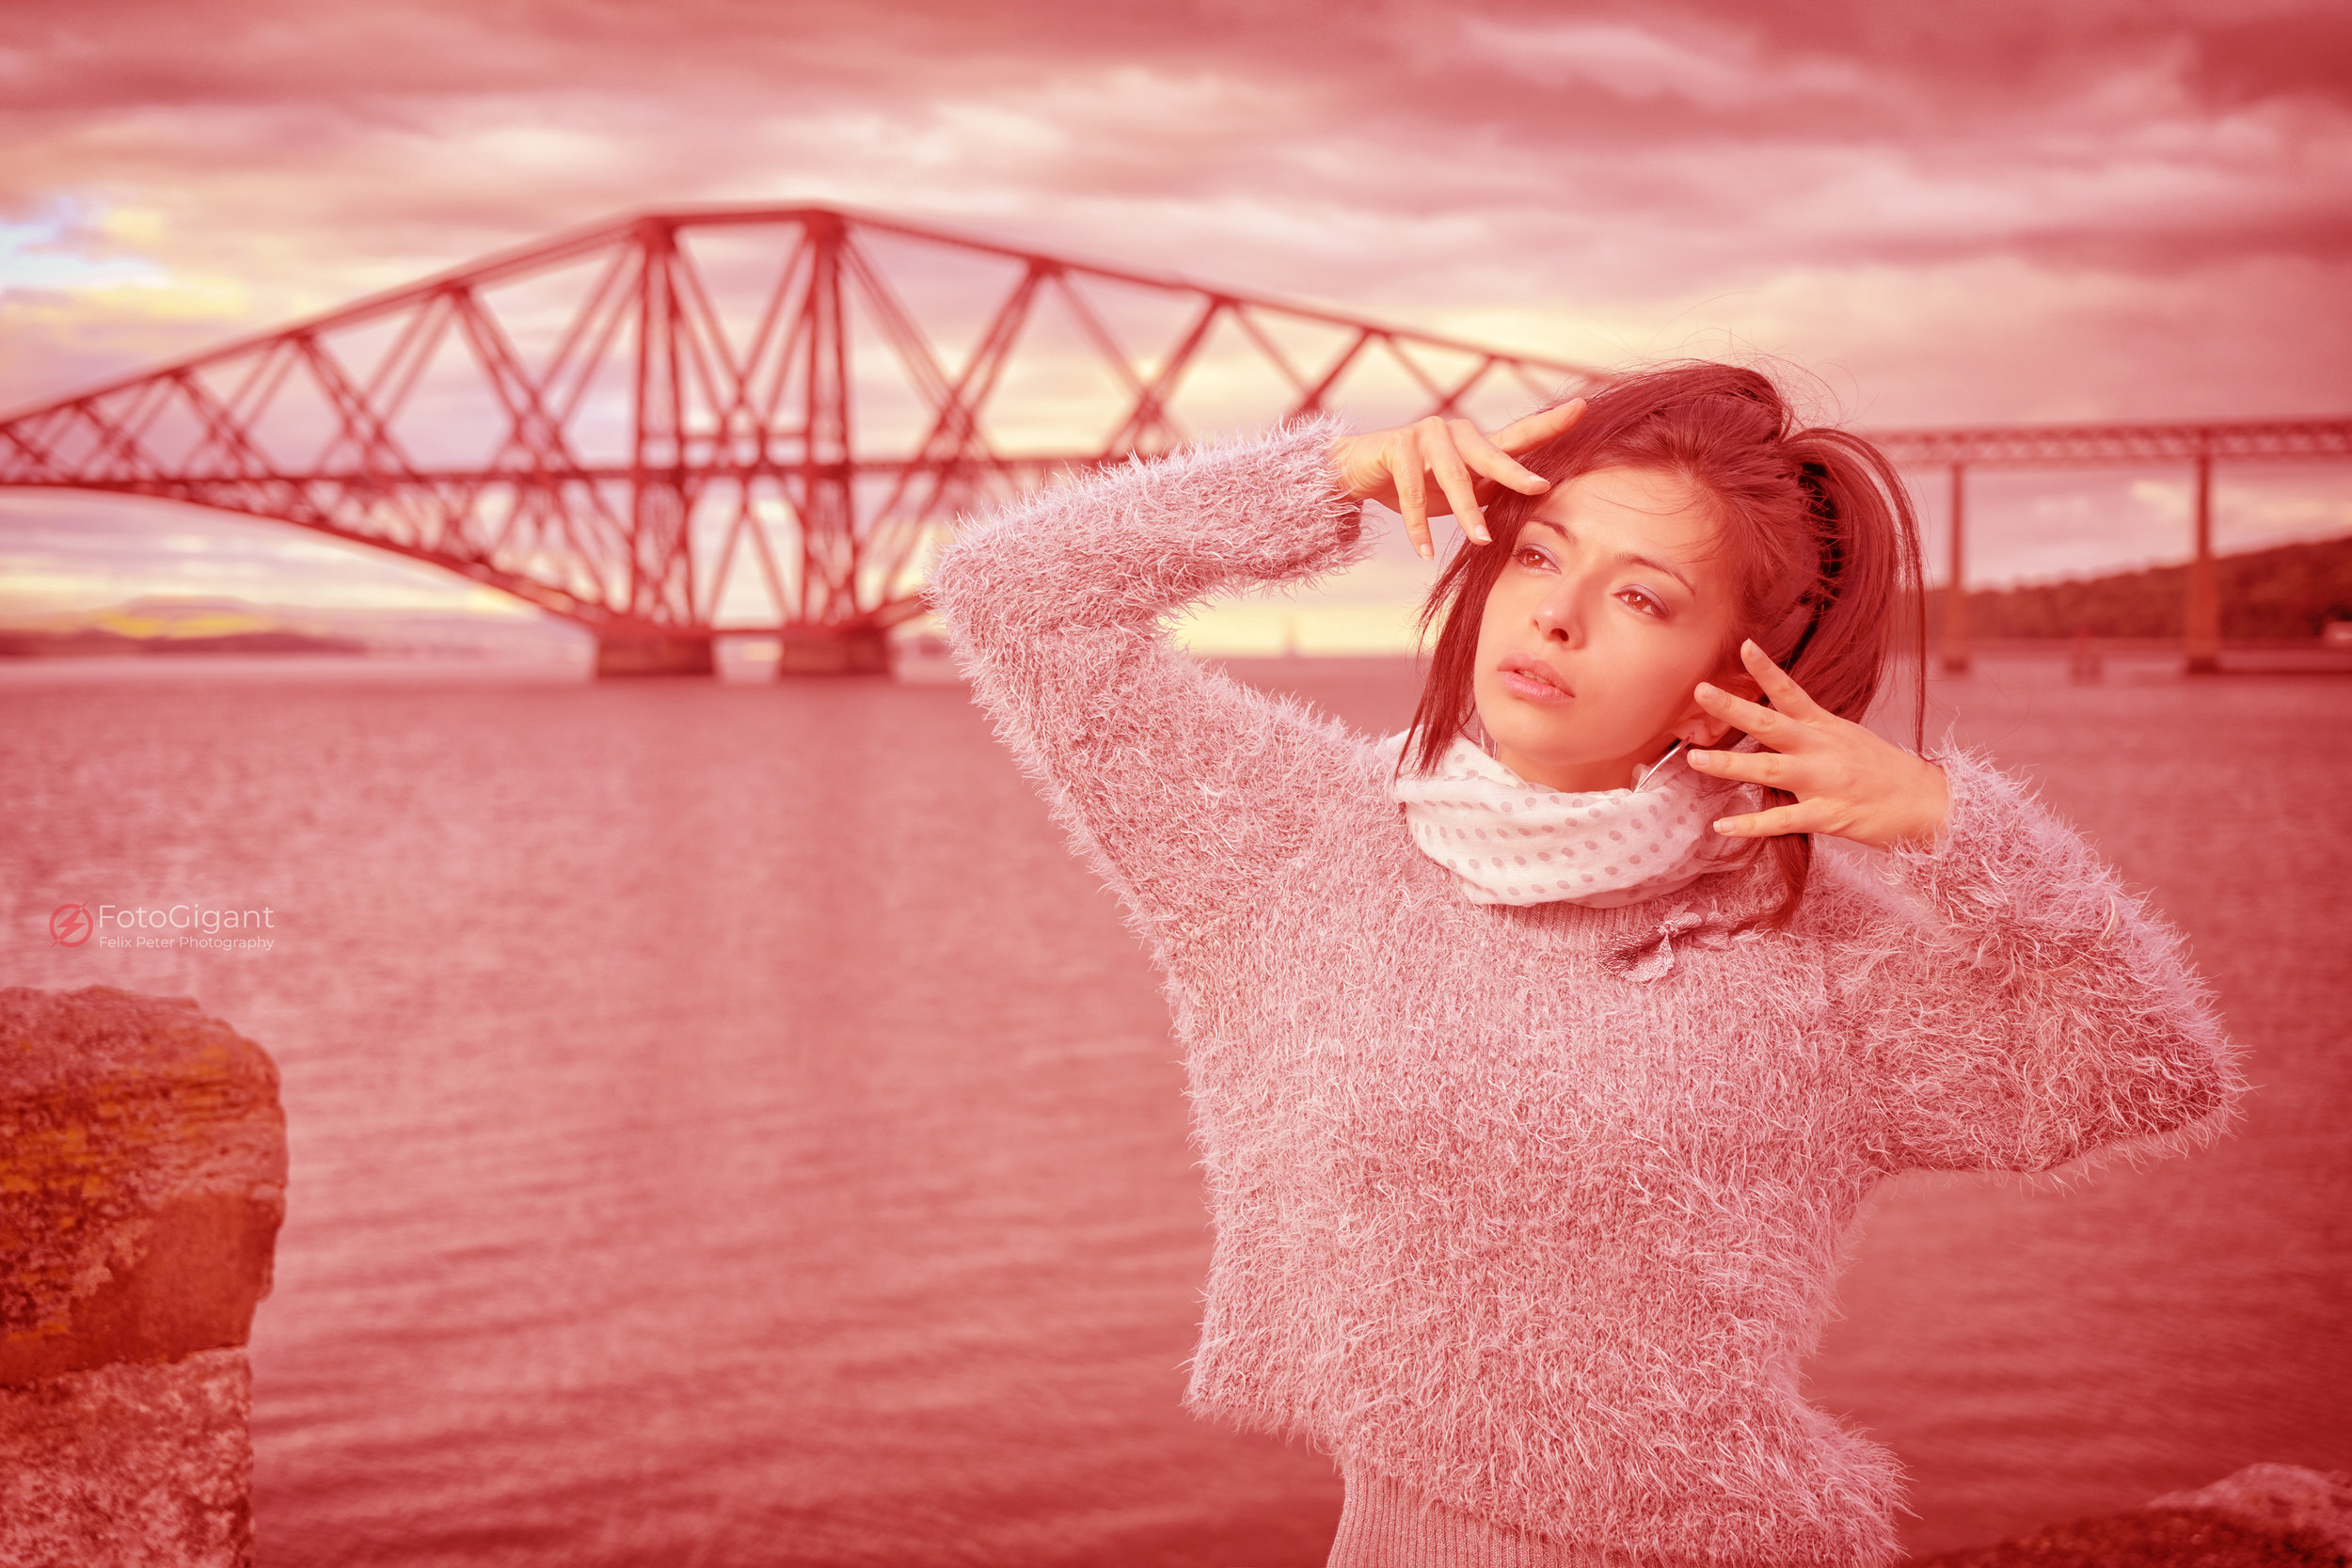 Scotland_Couth-Queensferry_Forth-Bridge_3.jpg